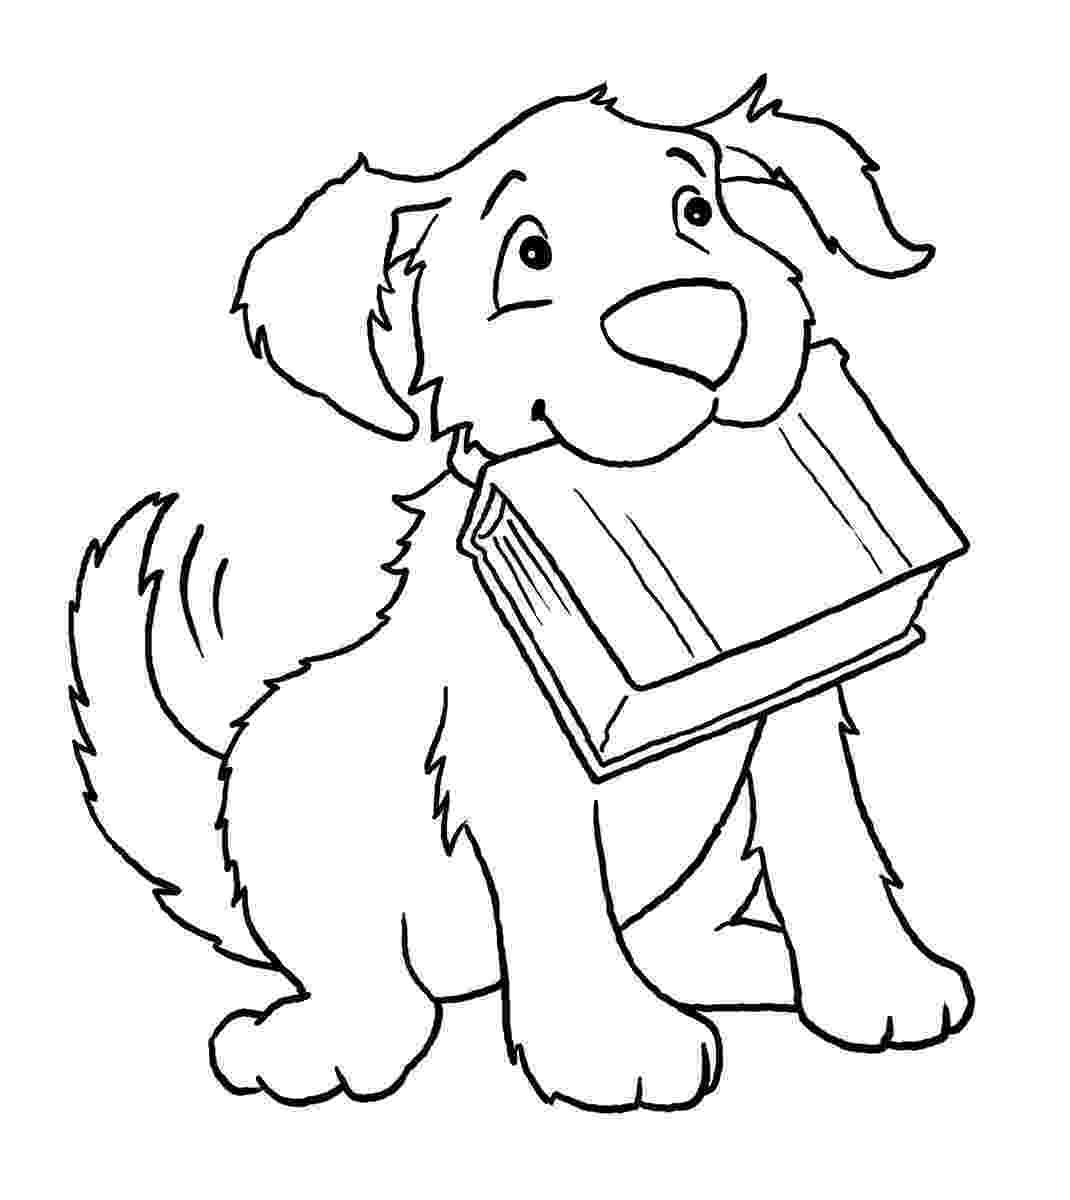 dog colouring pictures printable free printable dog coloring pages dog coloring pages colouring printable pictures dog